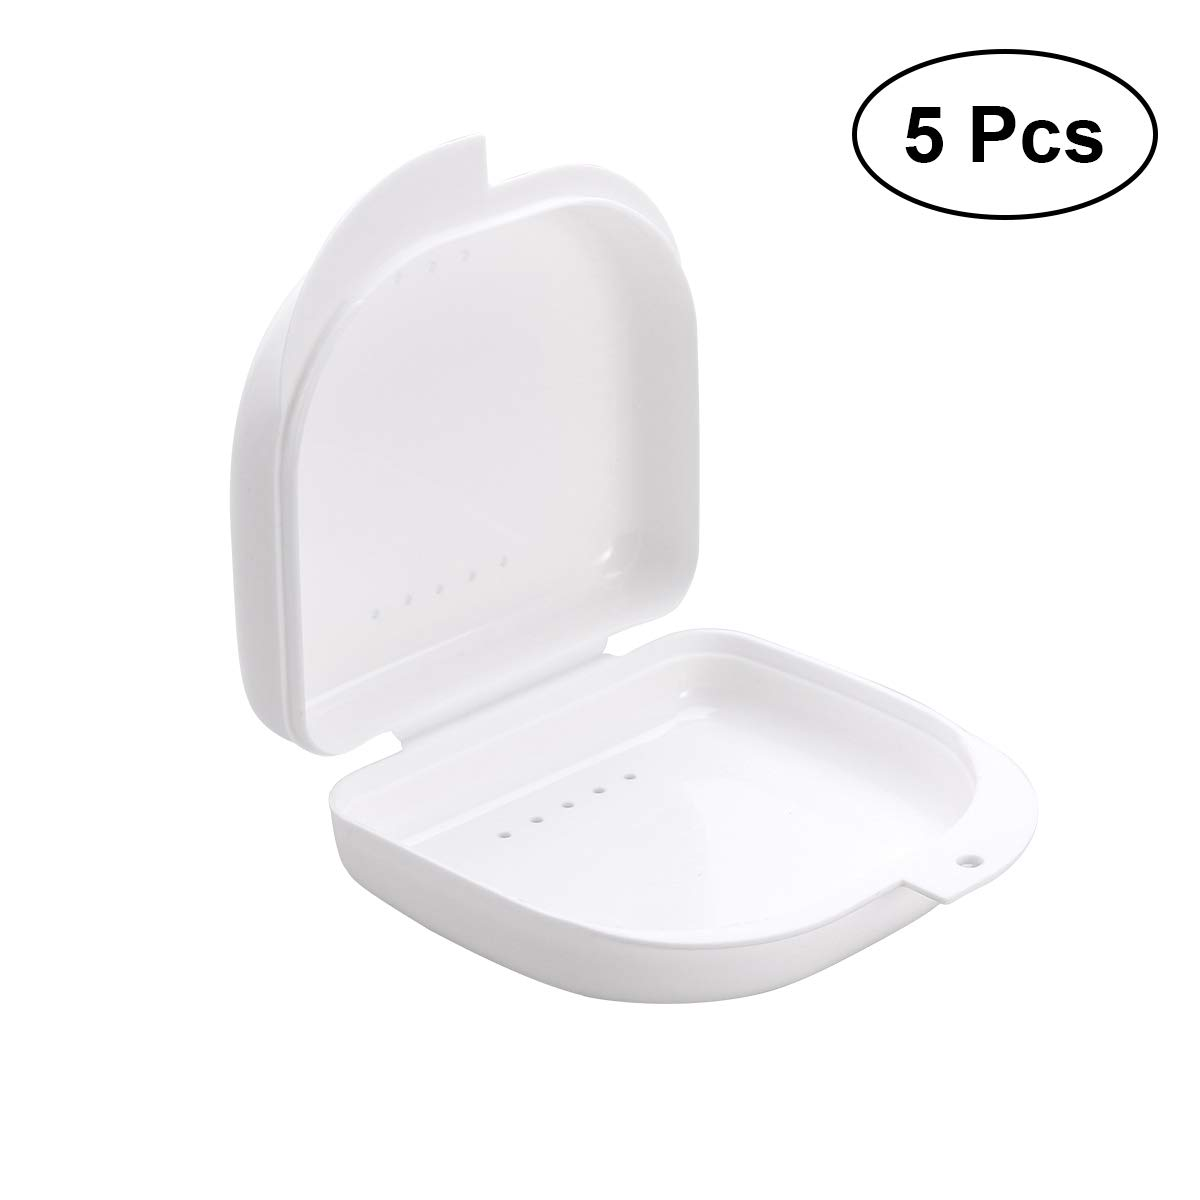 ROSENICE 5pcs Denture Retainer Case Orthodontic Denture Storage Container Box with Vent Holes and Hinged Lid Snaps (White)